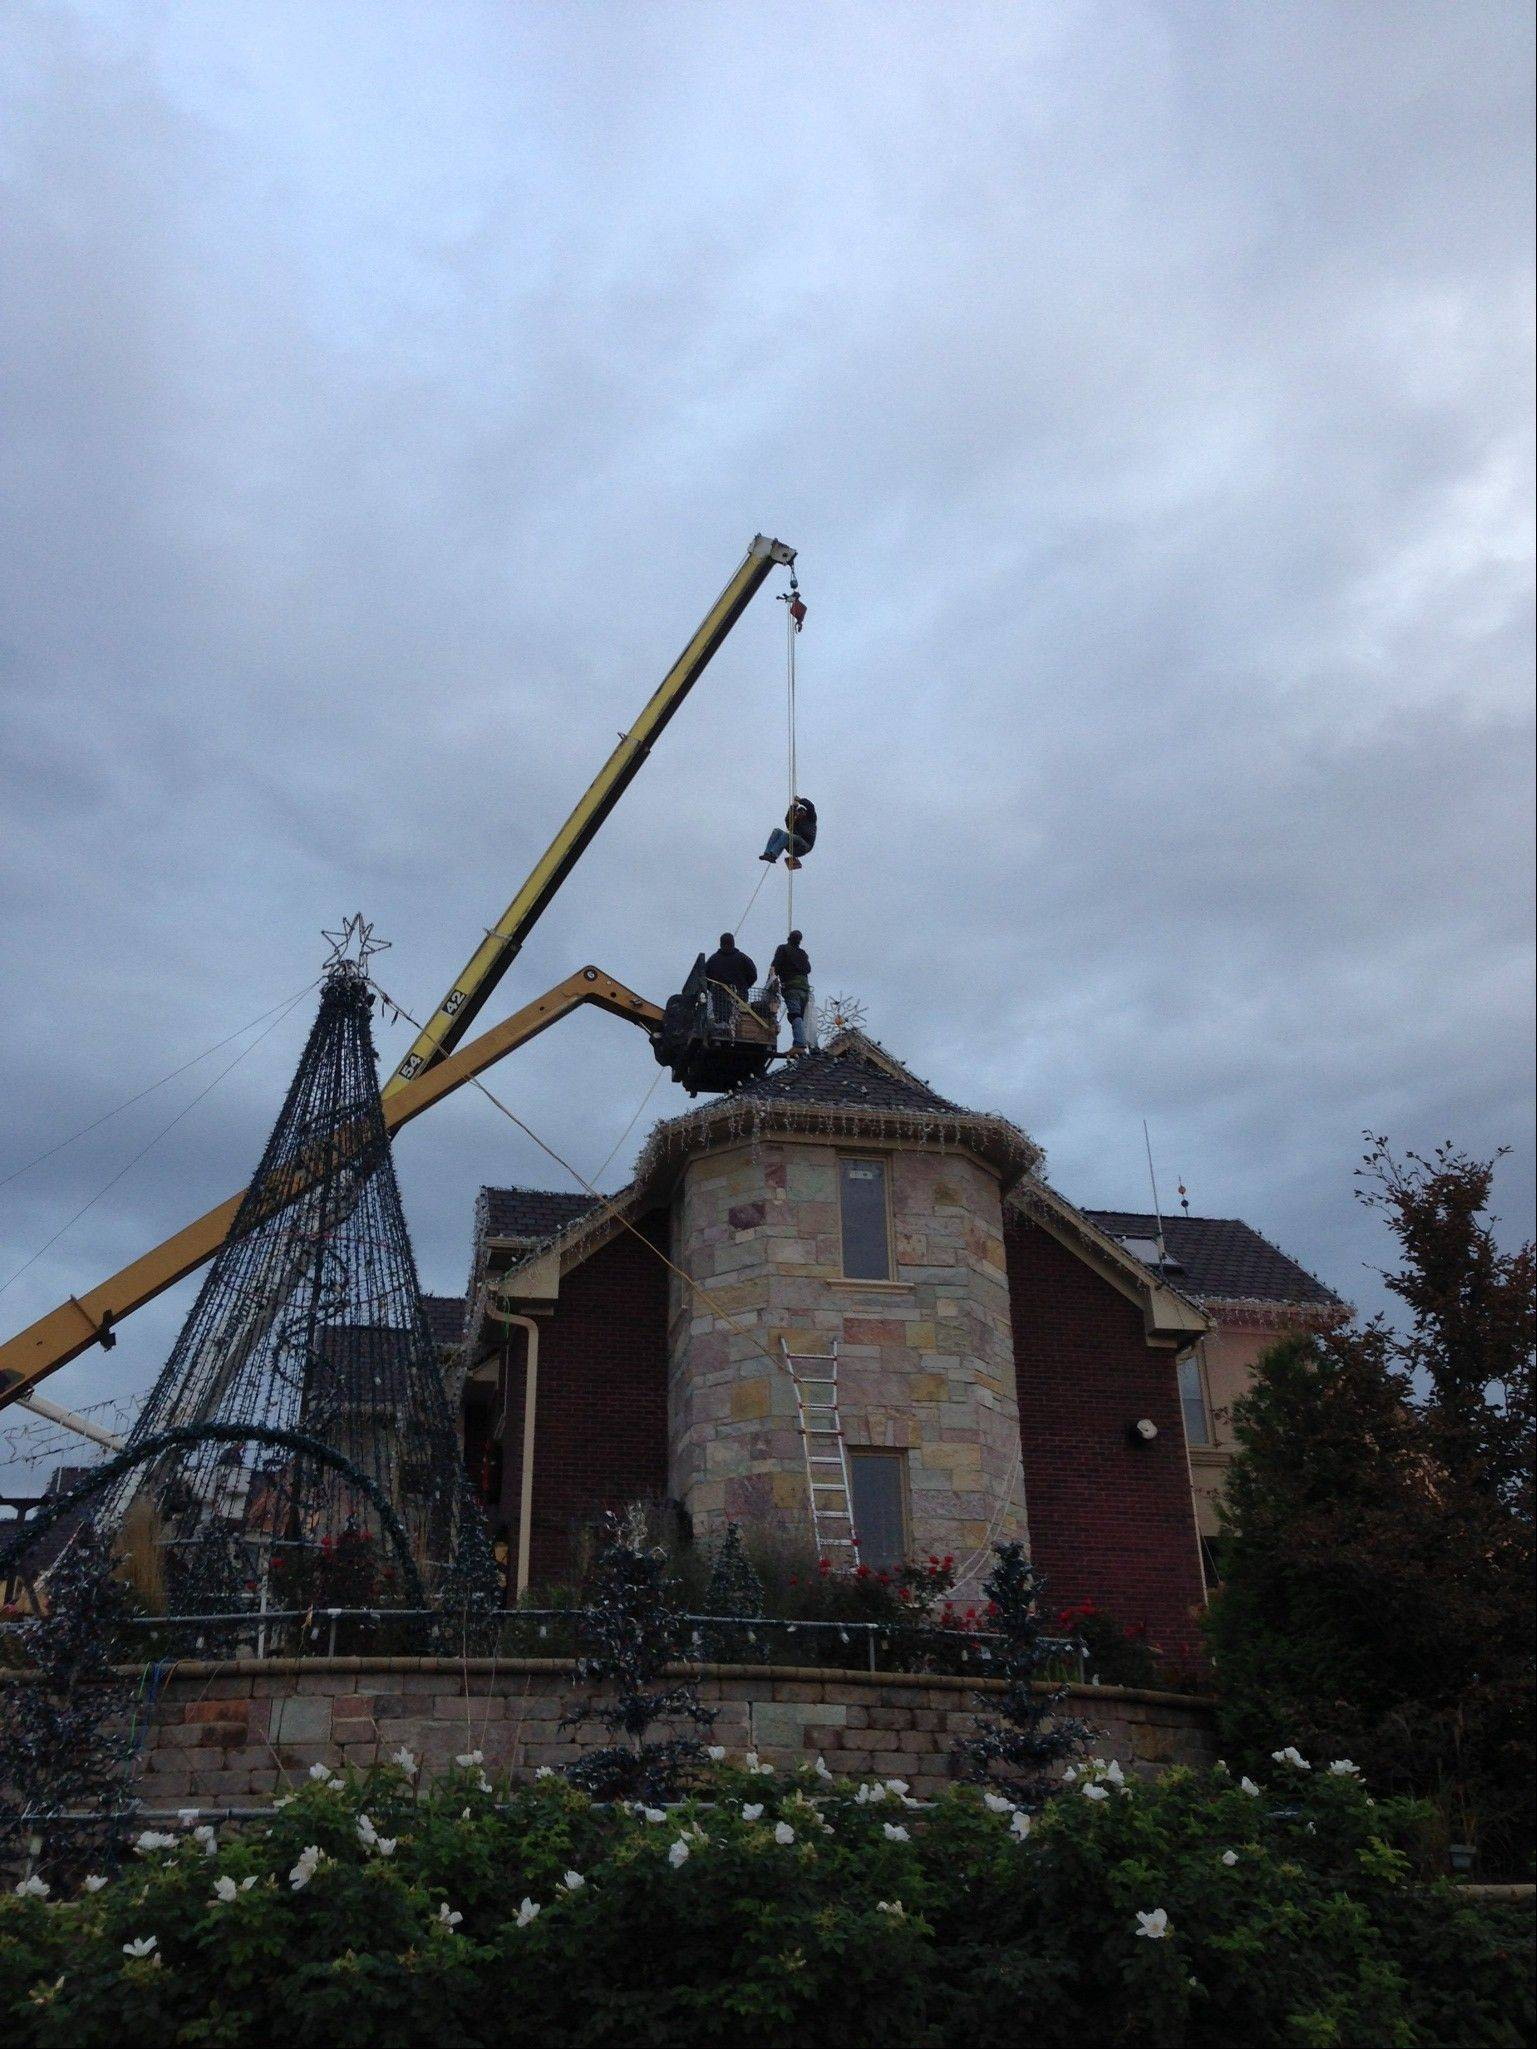 Crews utilized bucket trucks and a crane to install some 1 million lights in October on Brian Larsen's home in Elburn. The crane was used to lower men in harnesses onto the roof, so they could move freely without fear of falling.